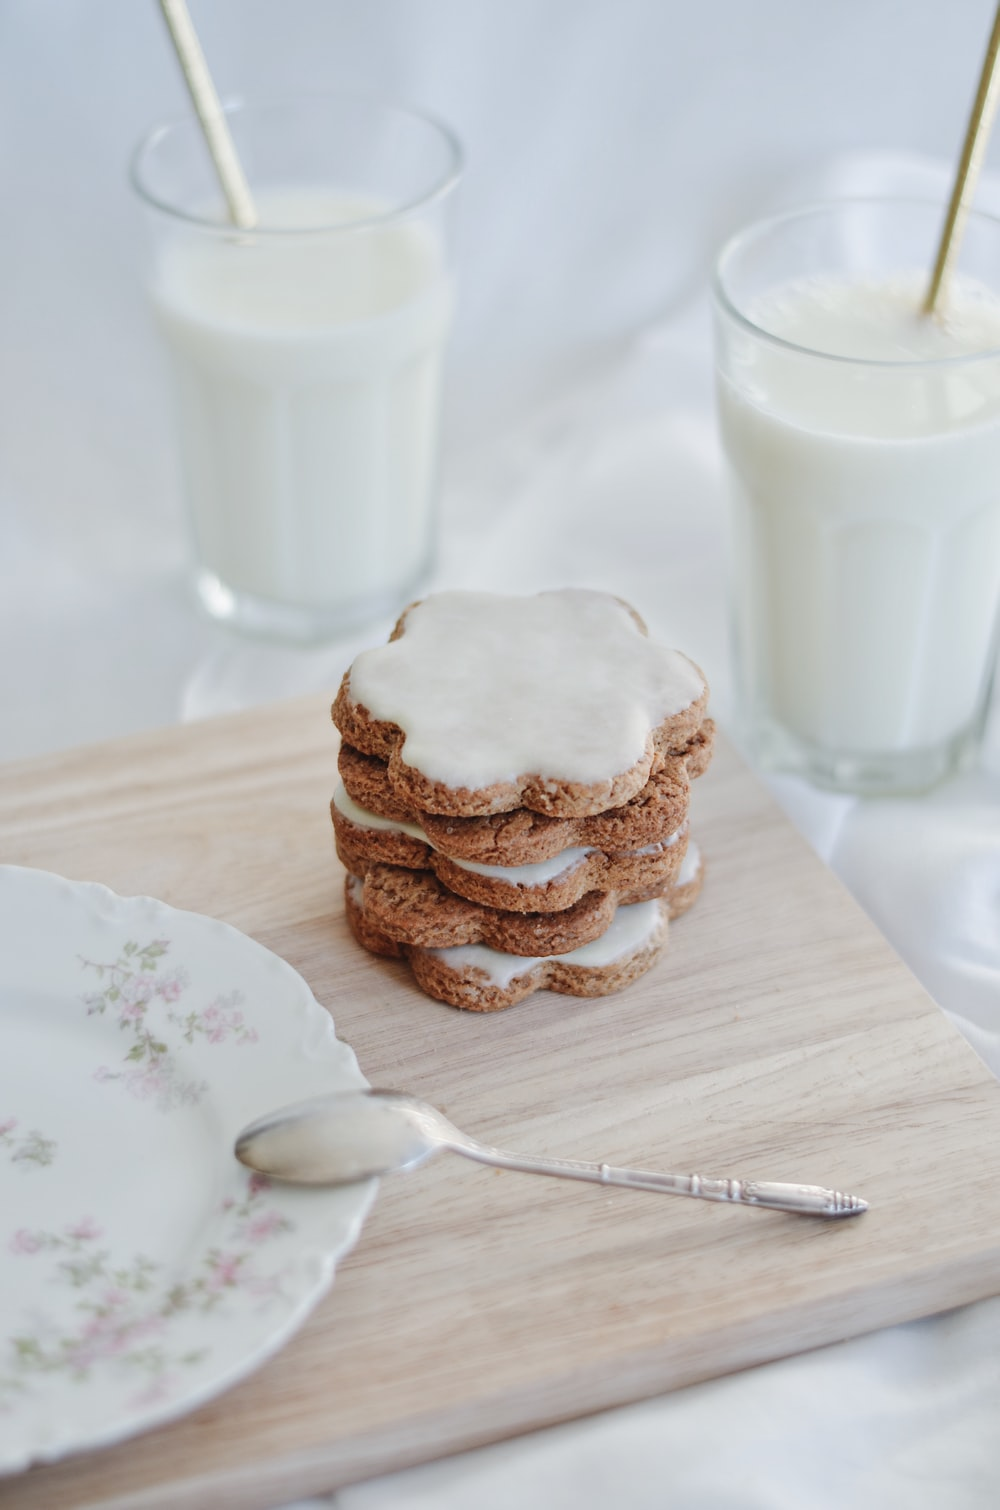 cookies on white ceramic plate beside stainless steel fork